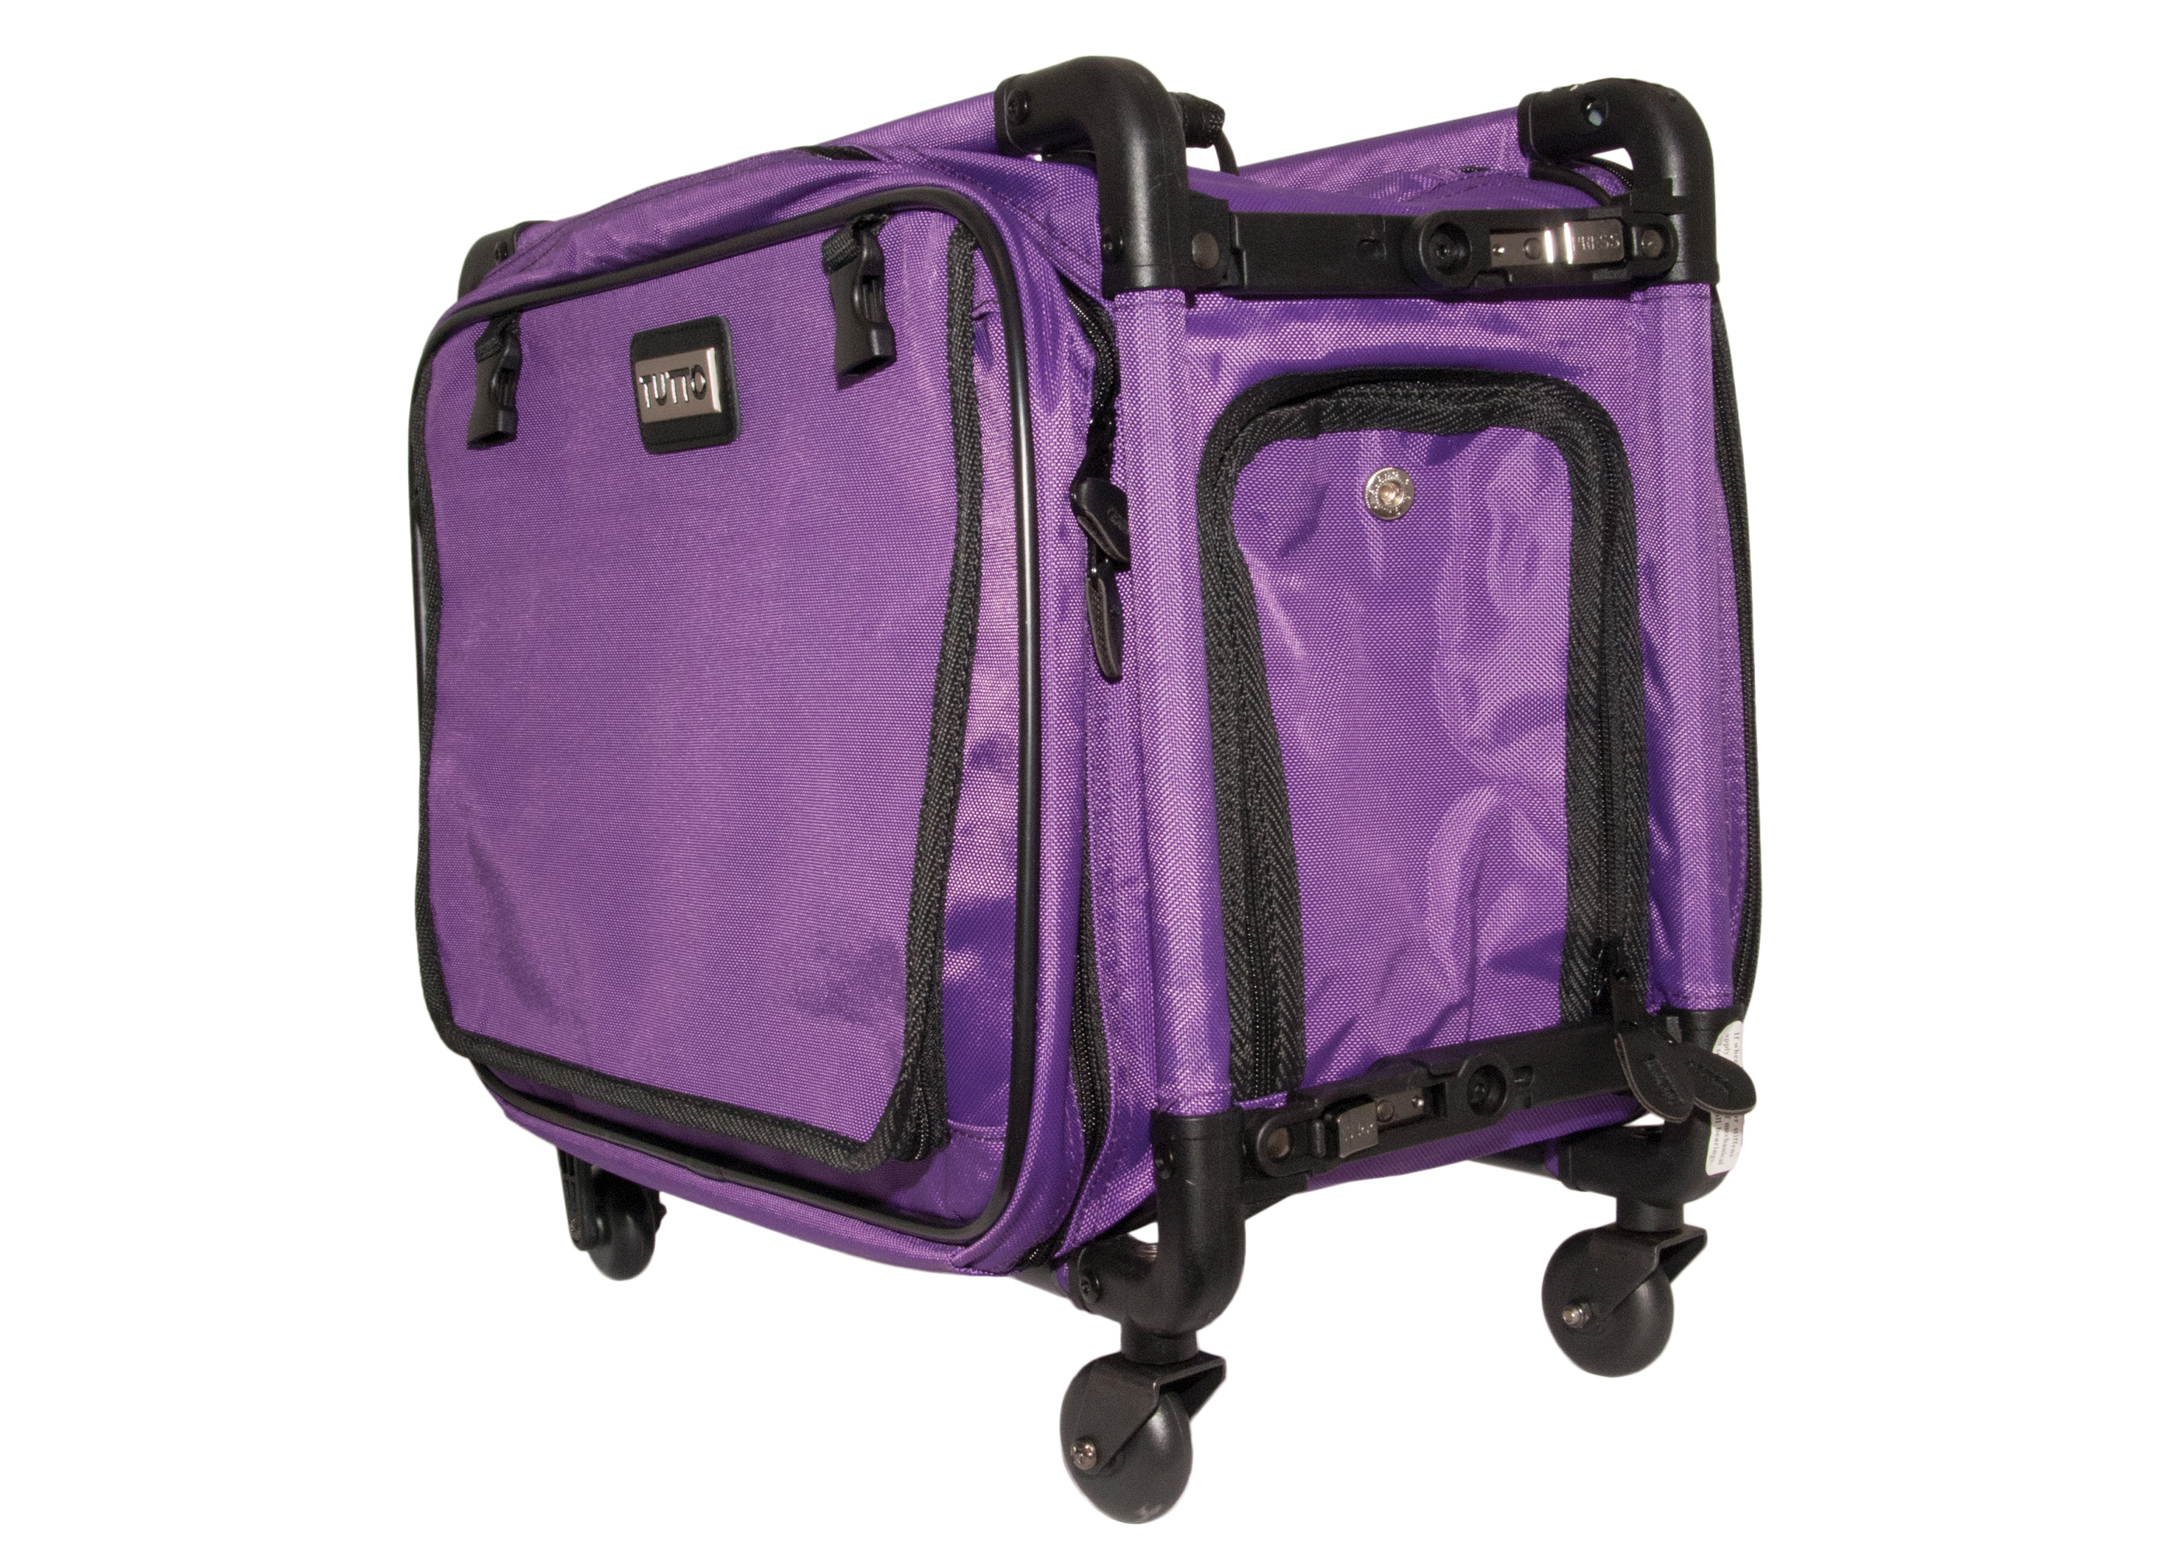 4972e8c804 Tutto Pet Carrier Sm. Purple43x33x20cm* - Transgroom - Pet Care ...